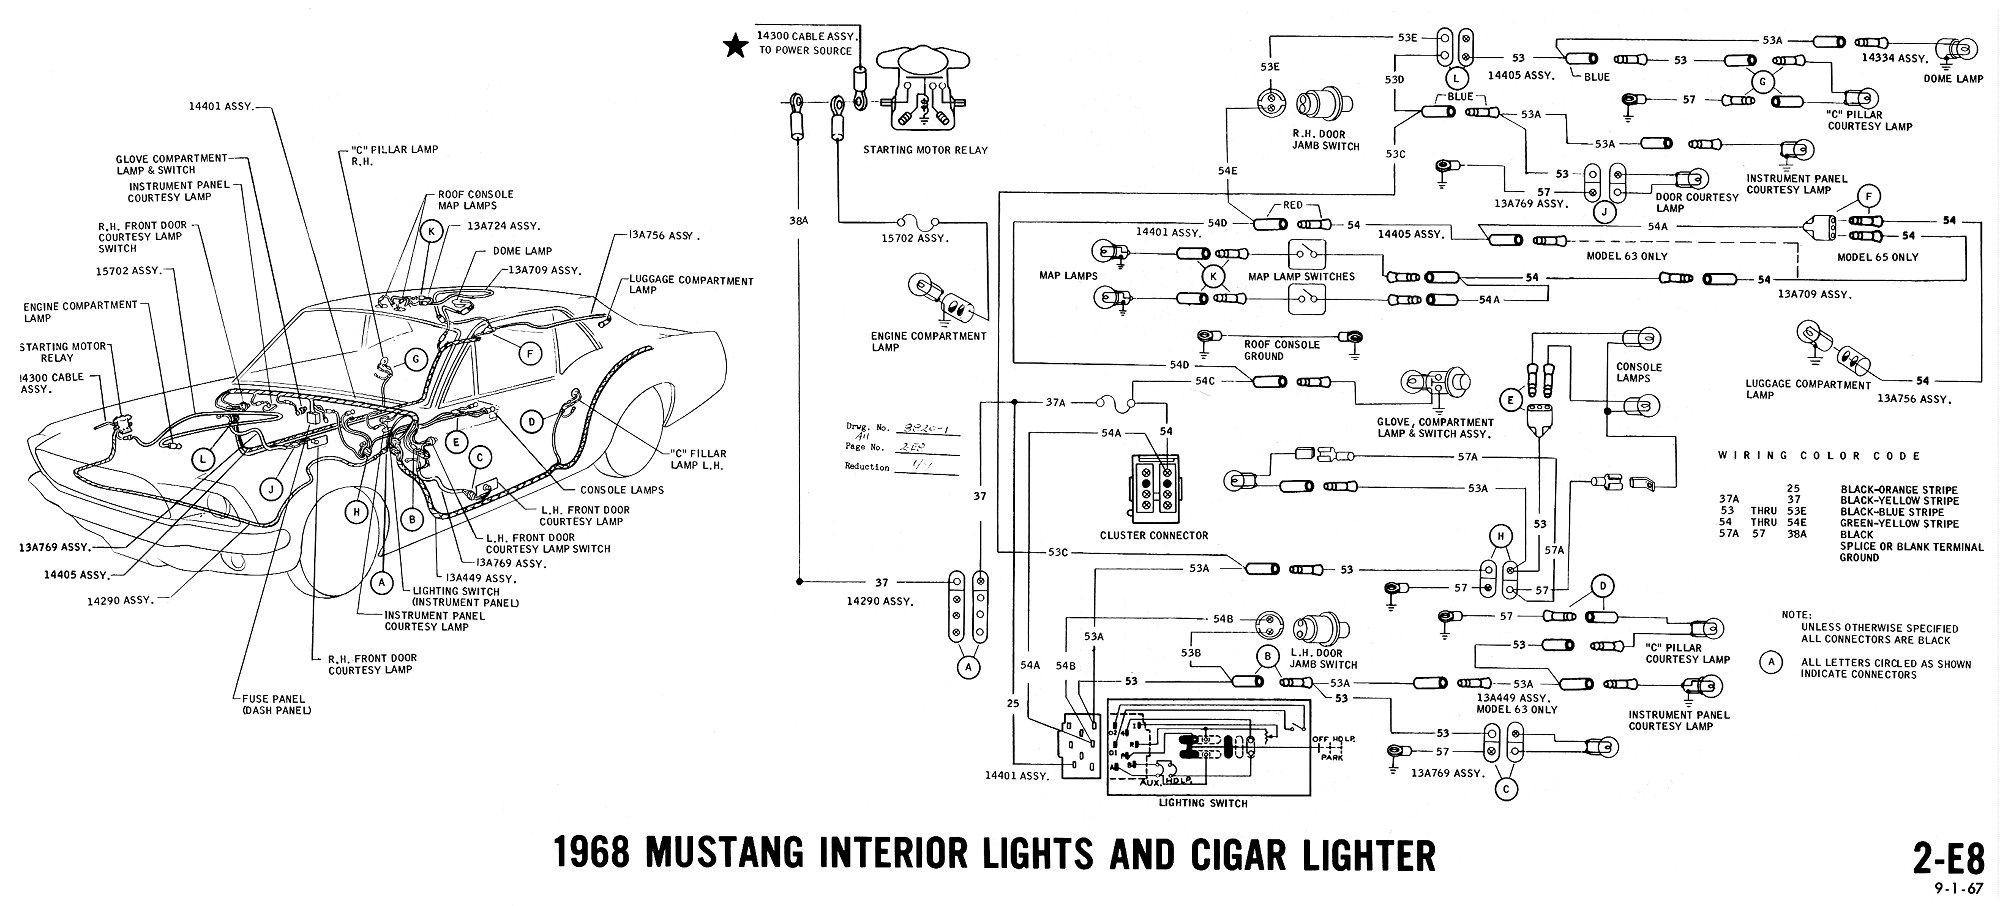 1968 Mustang Wiring Diagram Free Guide And Troubleshooting Of 68 Dash Picture Schematic Todays Rh 19 1 9 1813weddingbarn Com Ignition Switch Harness